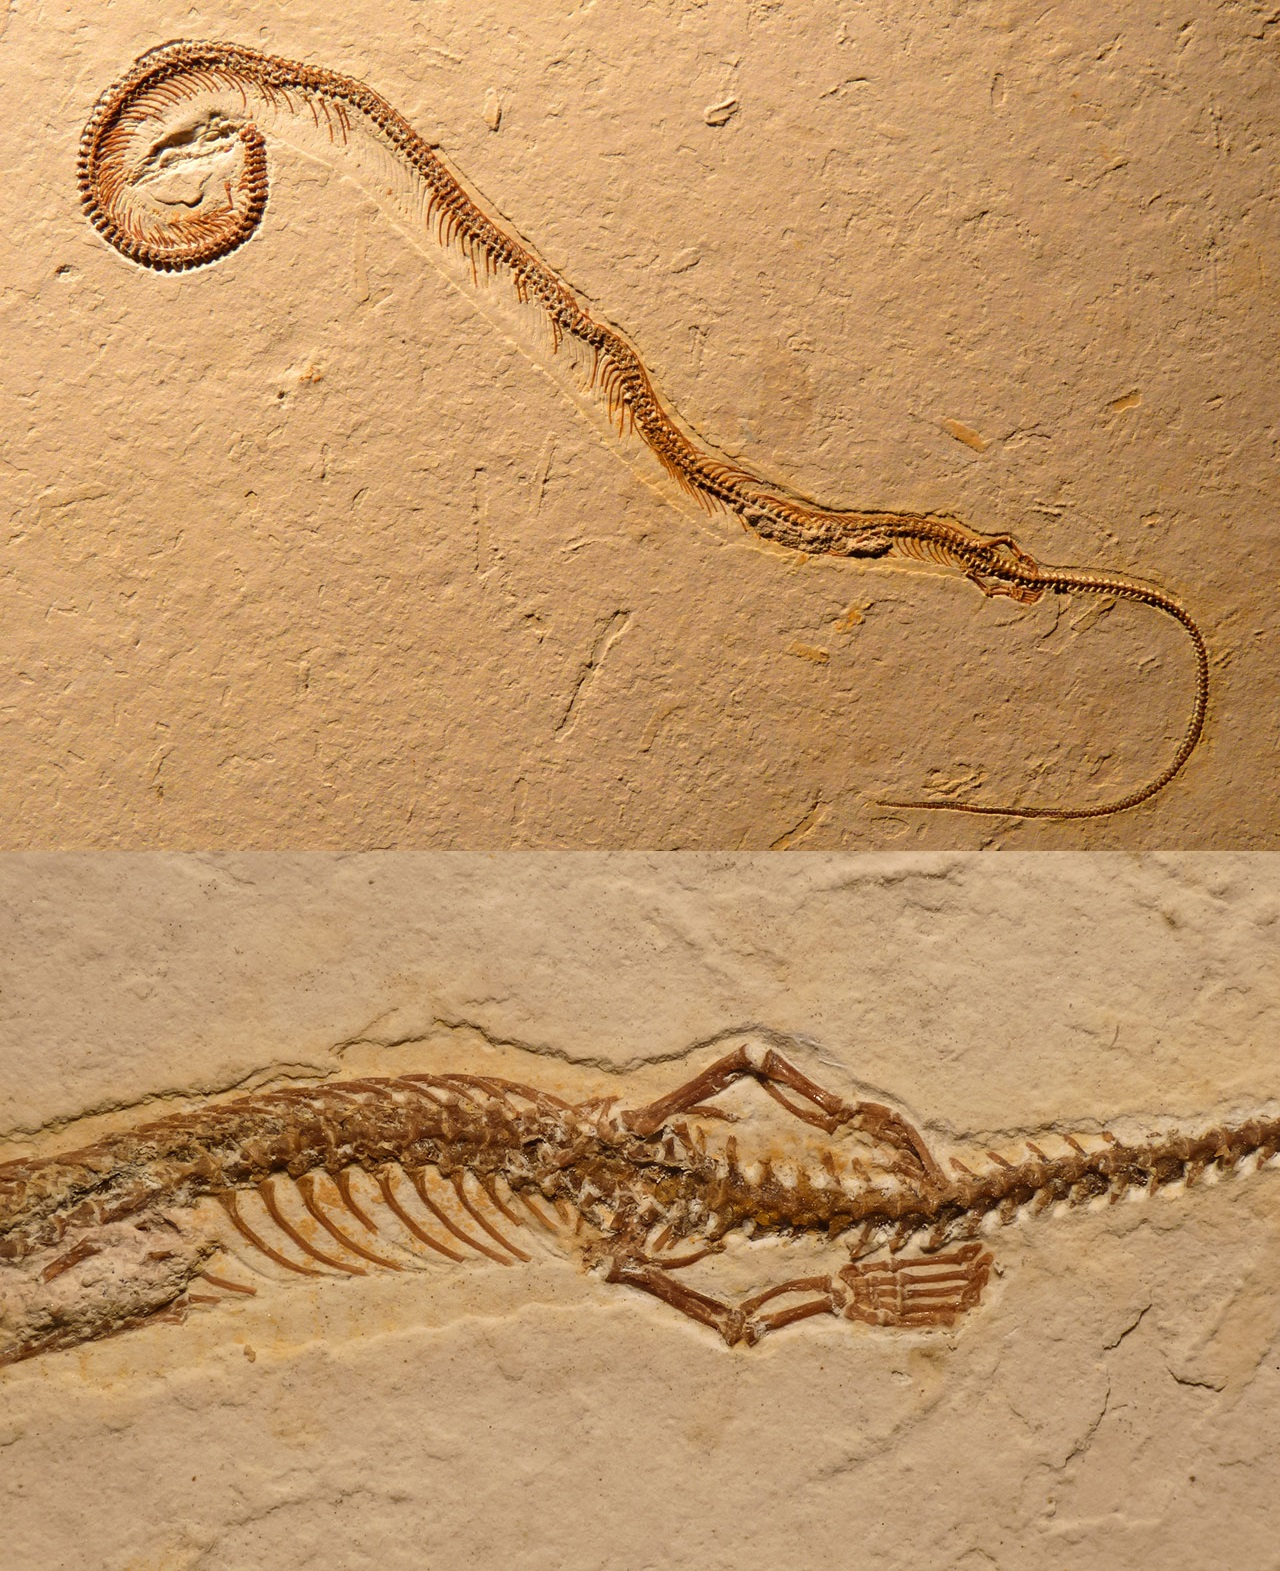 The fossil of  Tetrapodophis amplectus , showing its full snake-like skeleton (top) and protruding limbs (bottom).  David Martill/Helmet Tischlinger/Nicholas Longrich (used with permission)